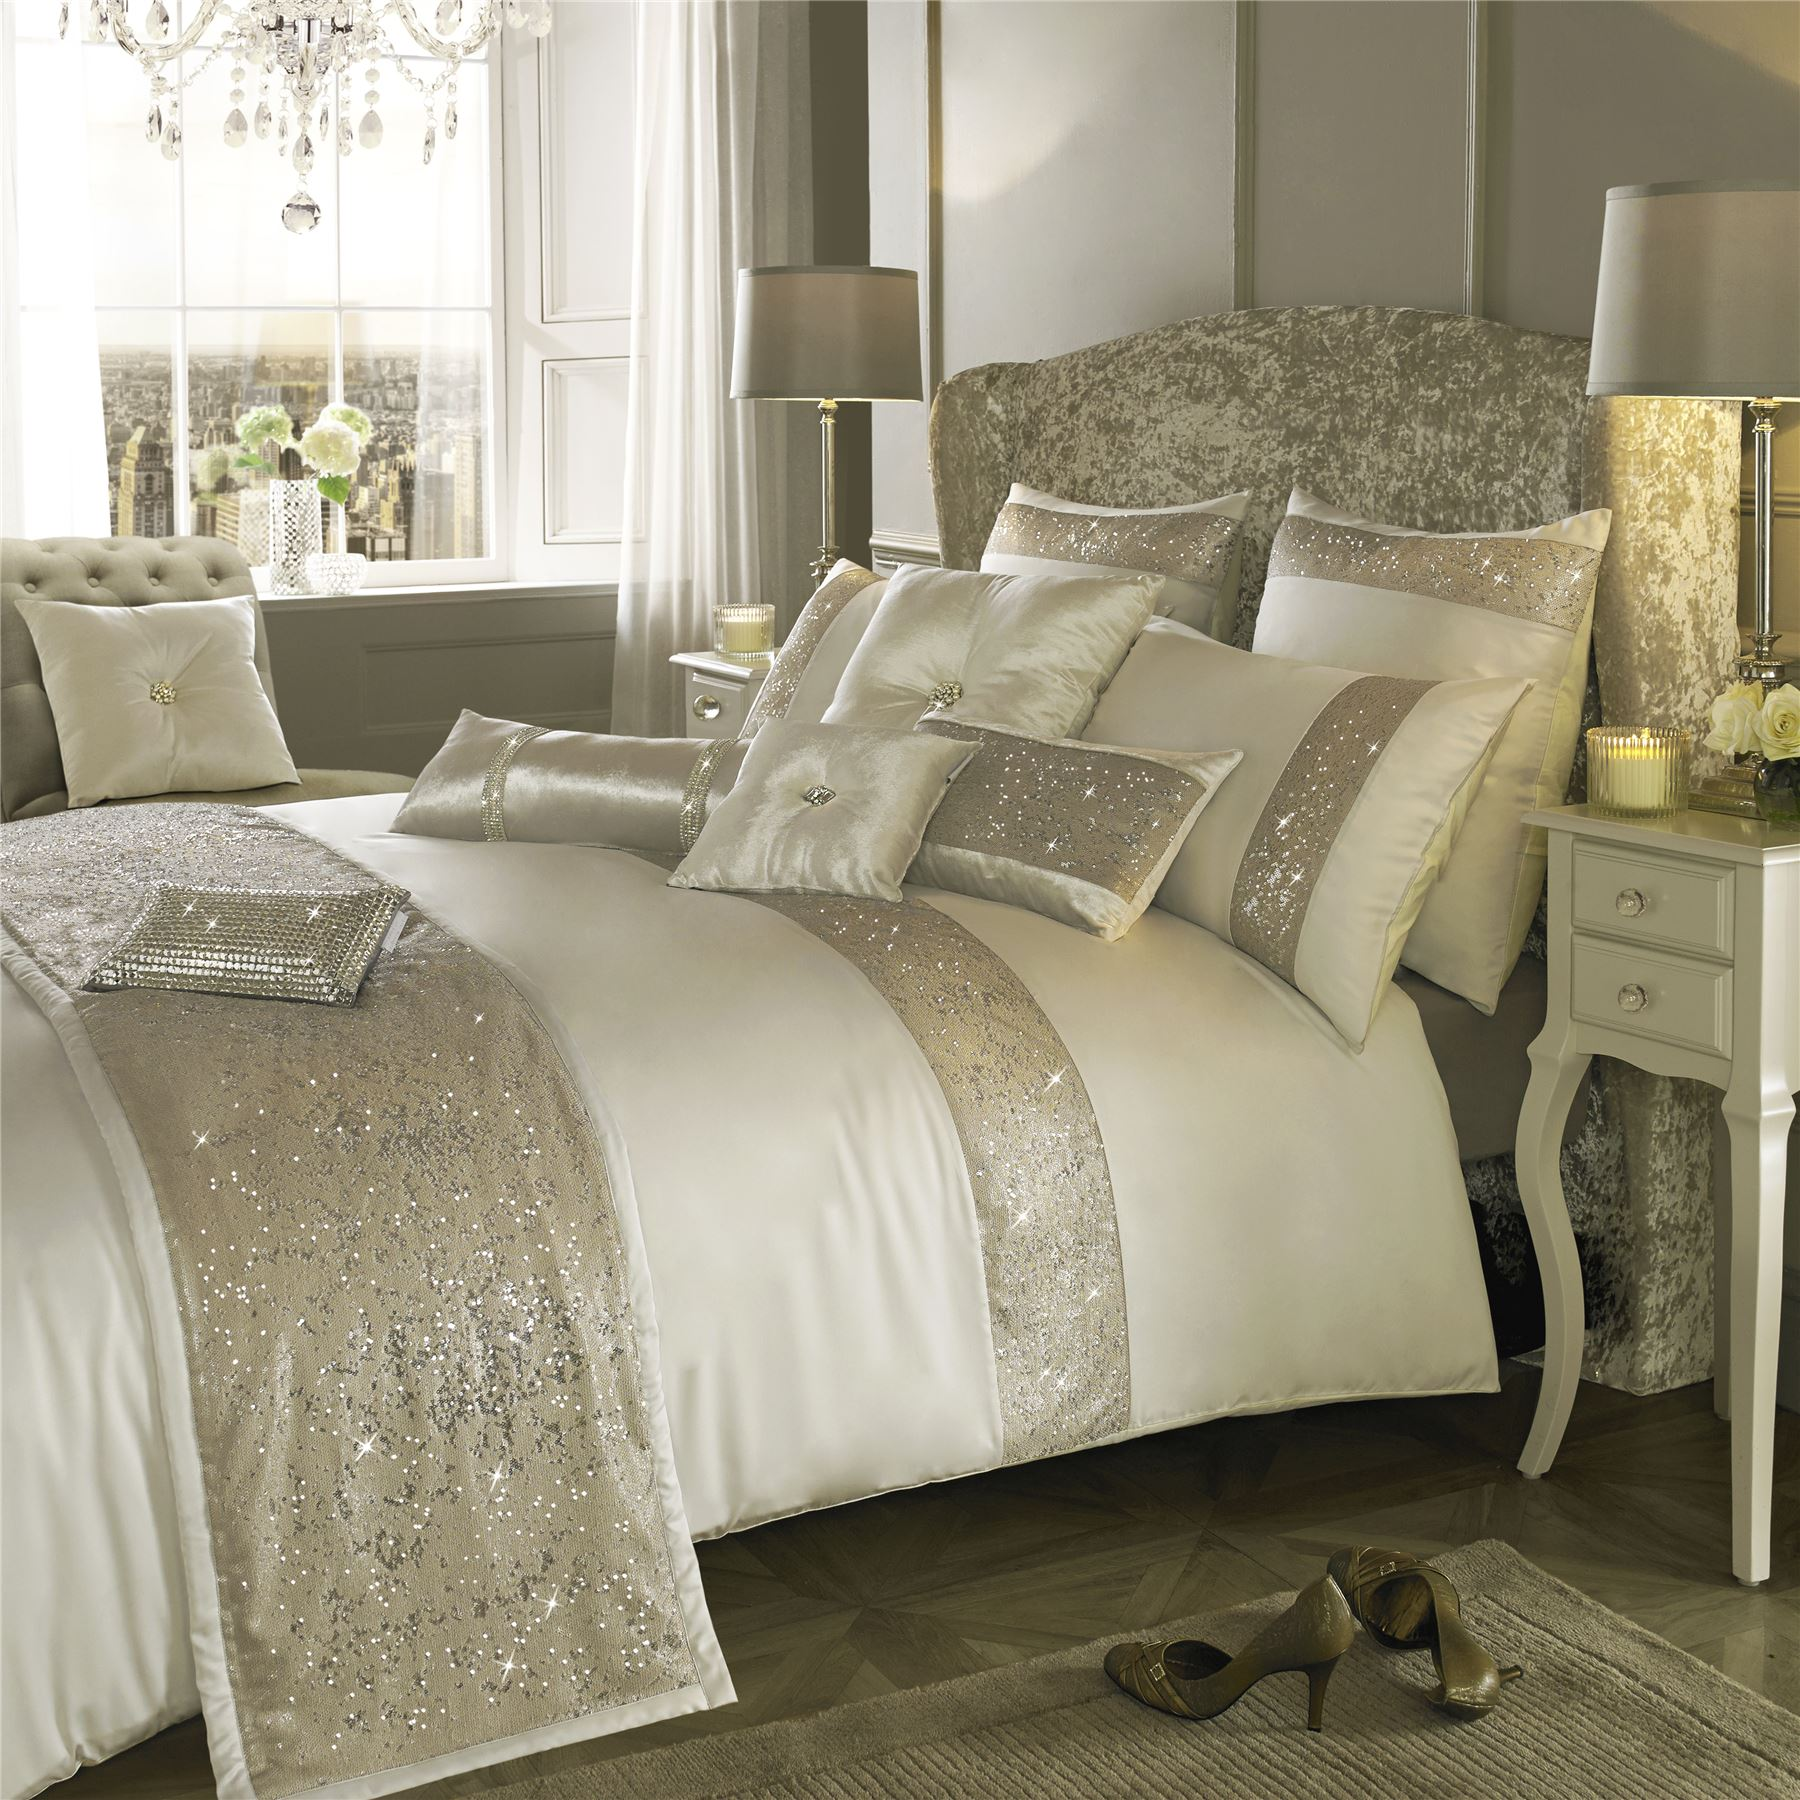 london bed bath products square homewares of designer gb x towels en pair bedding pillowcase and harrods com